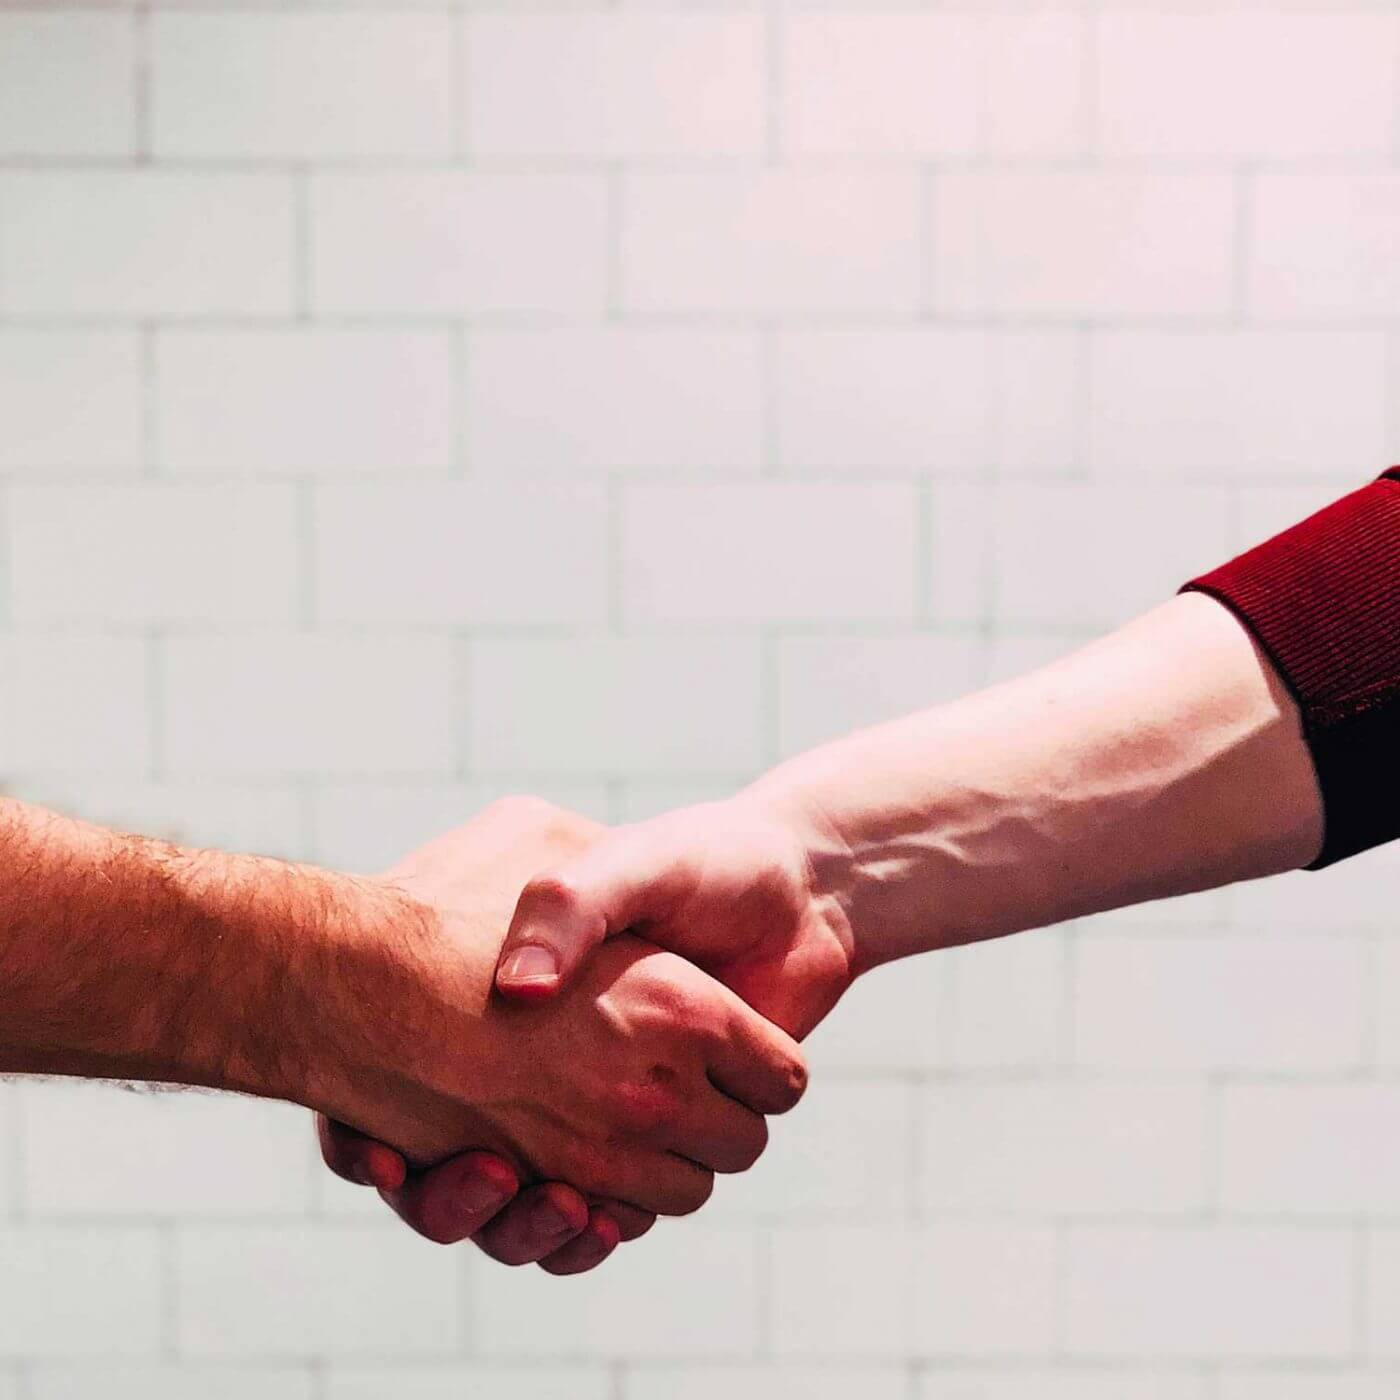 A closeup of two people shaking hands.